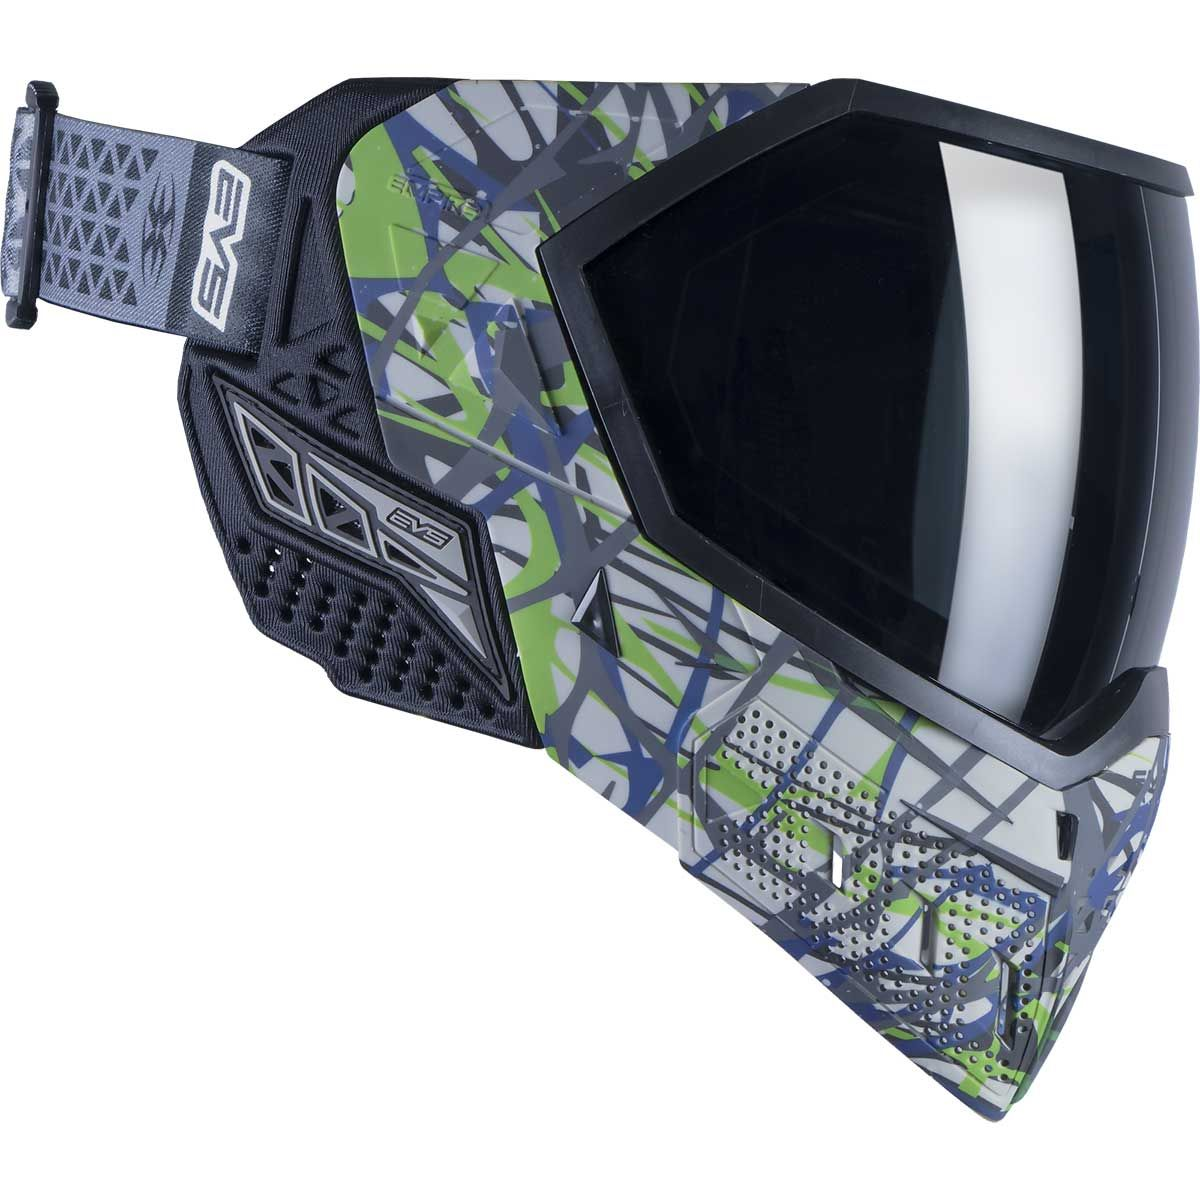 Empire Evs Thermal Paintball Mask Goggles Thermal Ninja Lens Le Thornz Ad Paintball Sponsored Mask Thermal Paintball Mask Goggles Paintball